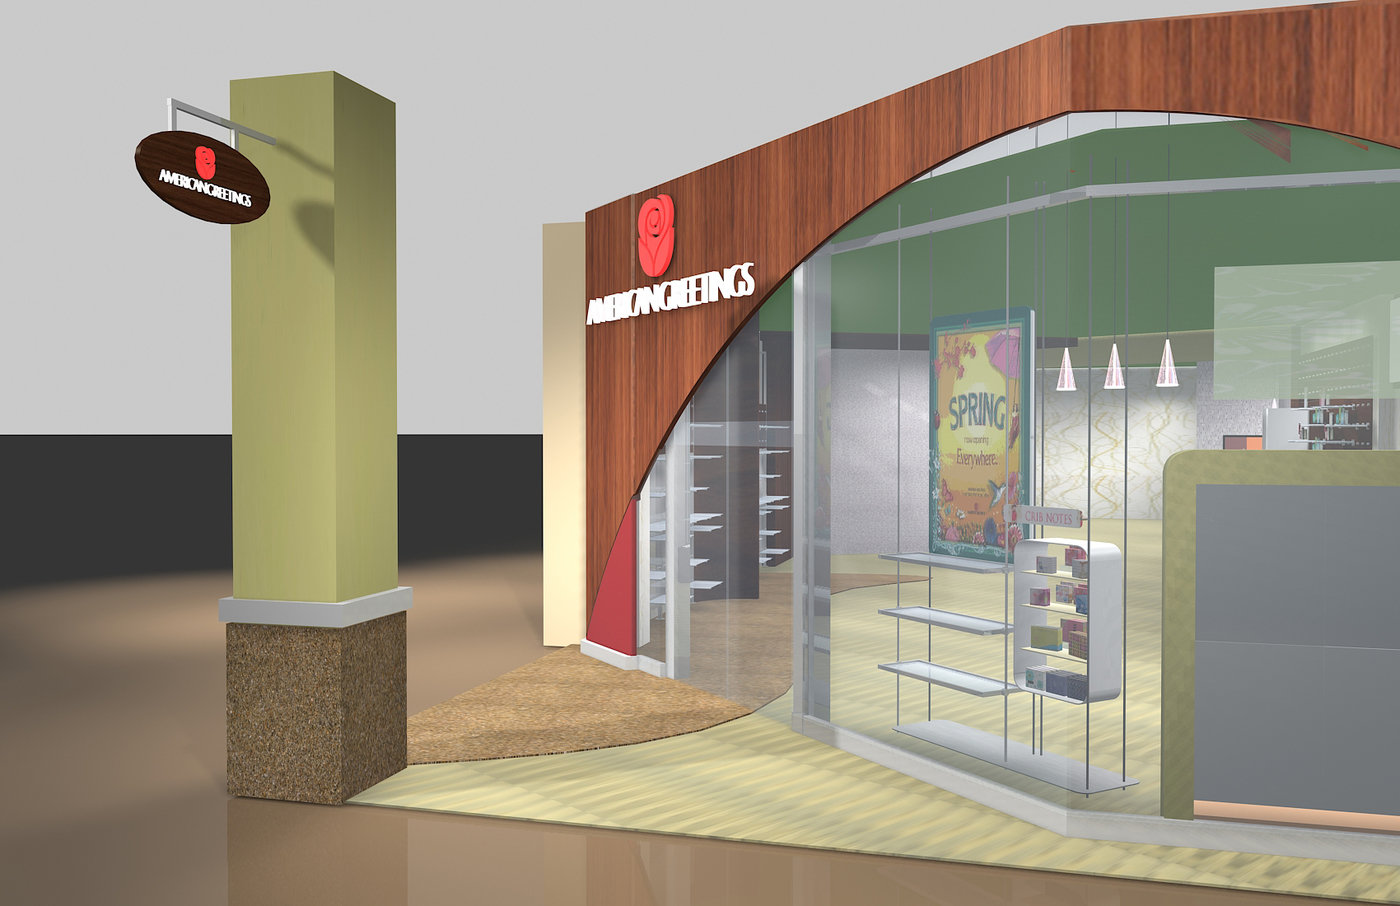 American greetings gallery store concept by elizabeth olson at gallery concept storefront carlton cards retail chain carrying the american greetings and carlton cards brands store located in mayfair mall m4hsunfo Gallery